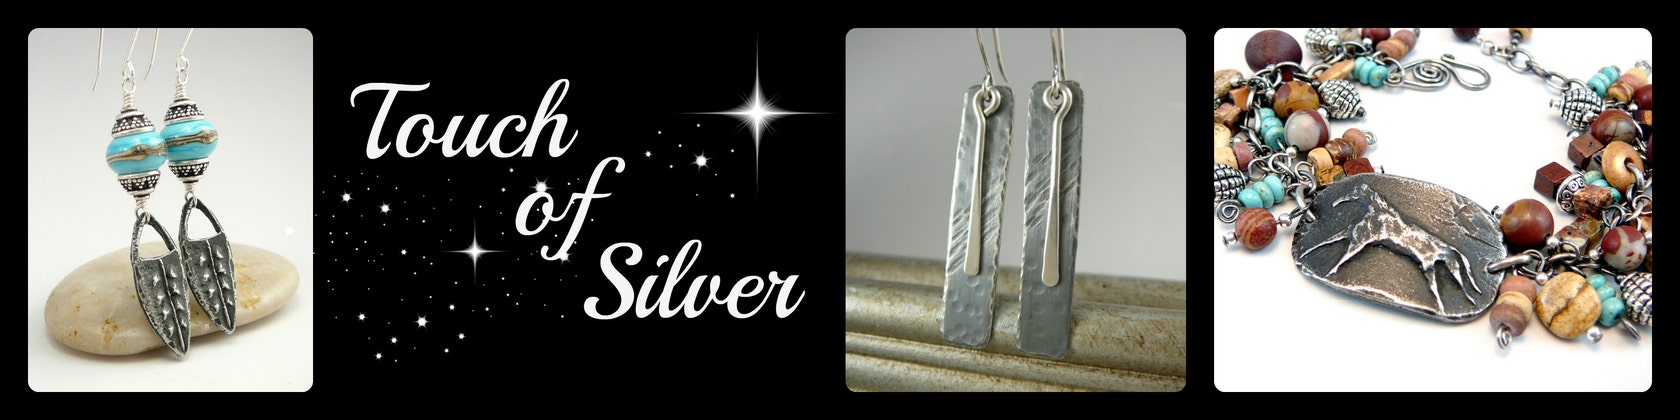 Touch of Silver Handmade Jewelry Designs